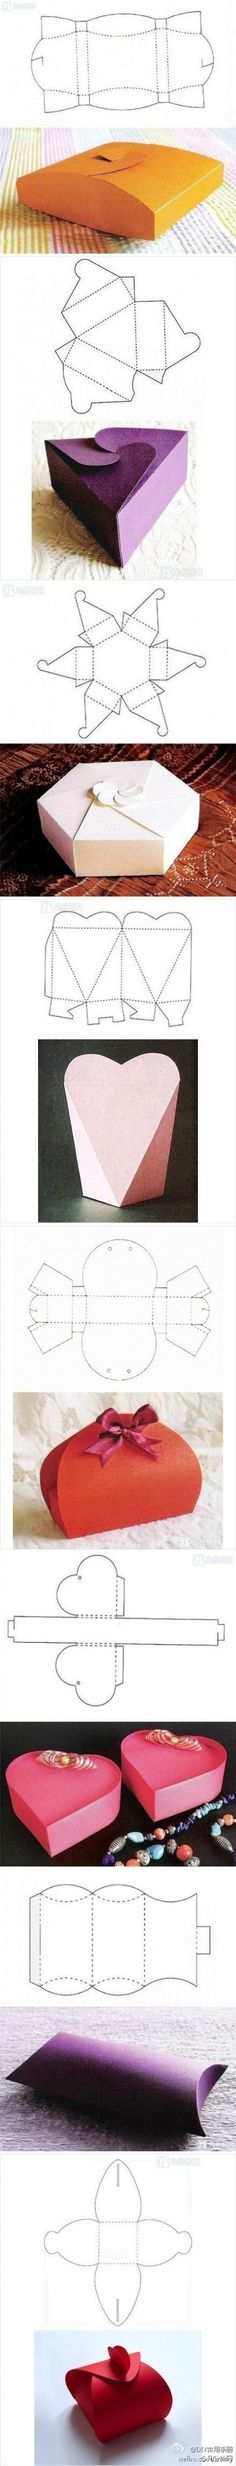 New origami box template patterns ideas Diy Paper, Paper Crafting, Paper Art, Paper Gifts, Fun Crafts, Diy And Crafts, Arts And Crafts, Homemade Gifts, Diy Gifts